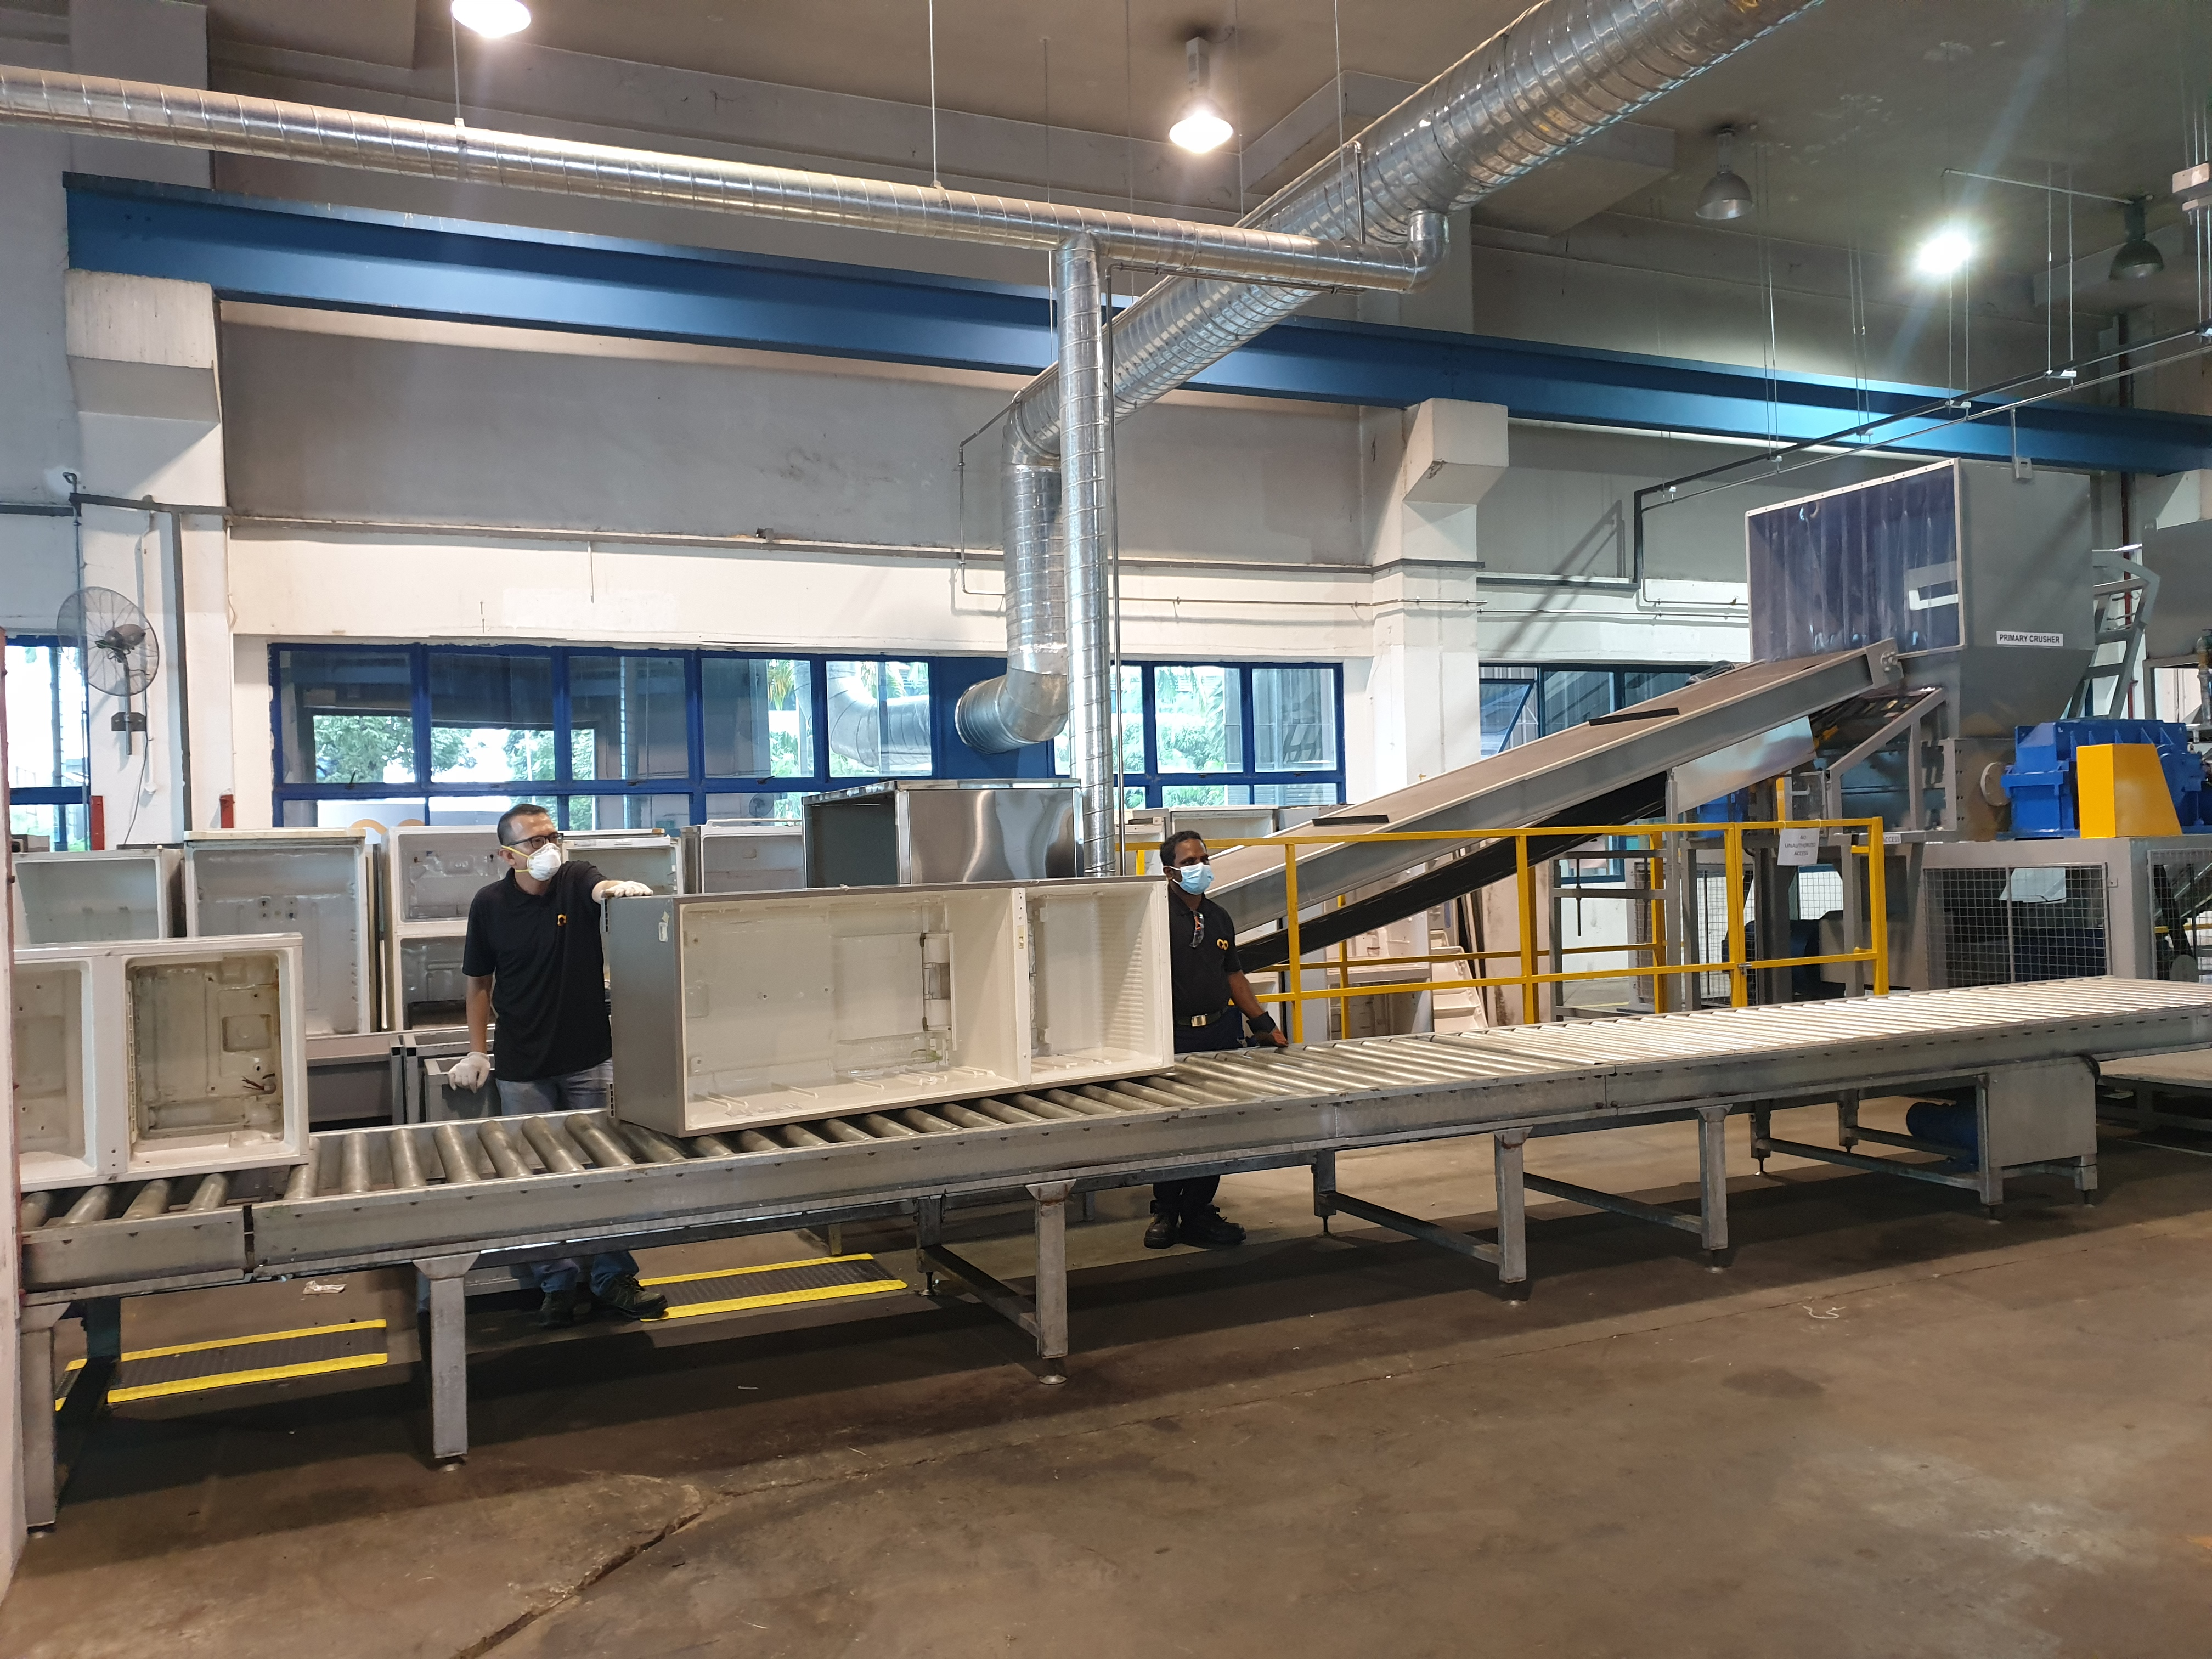 Singapore's first LHA recycling plant